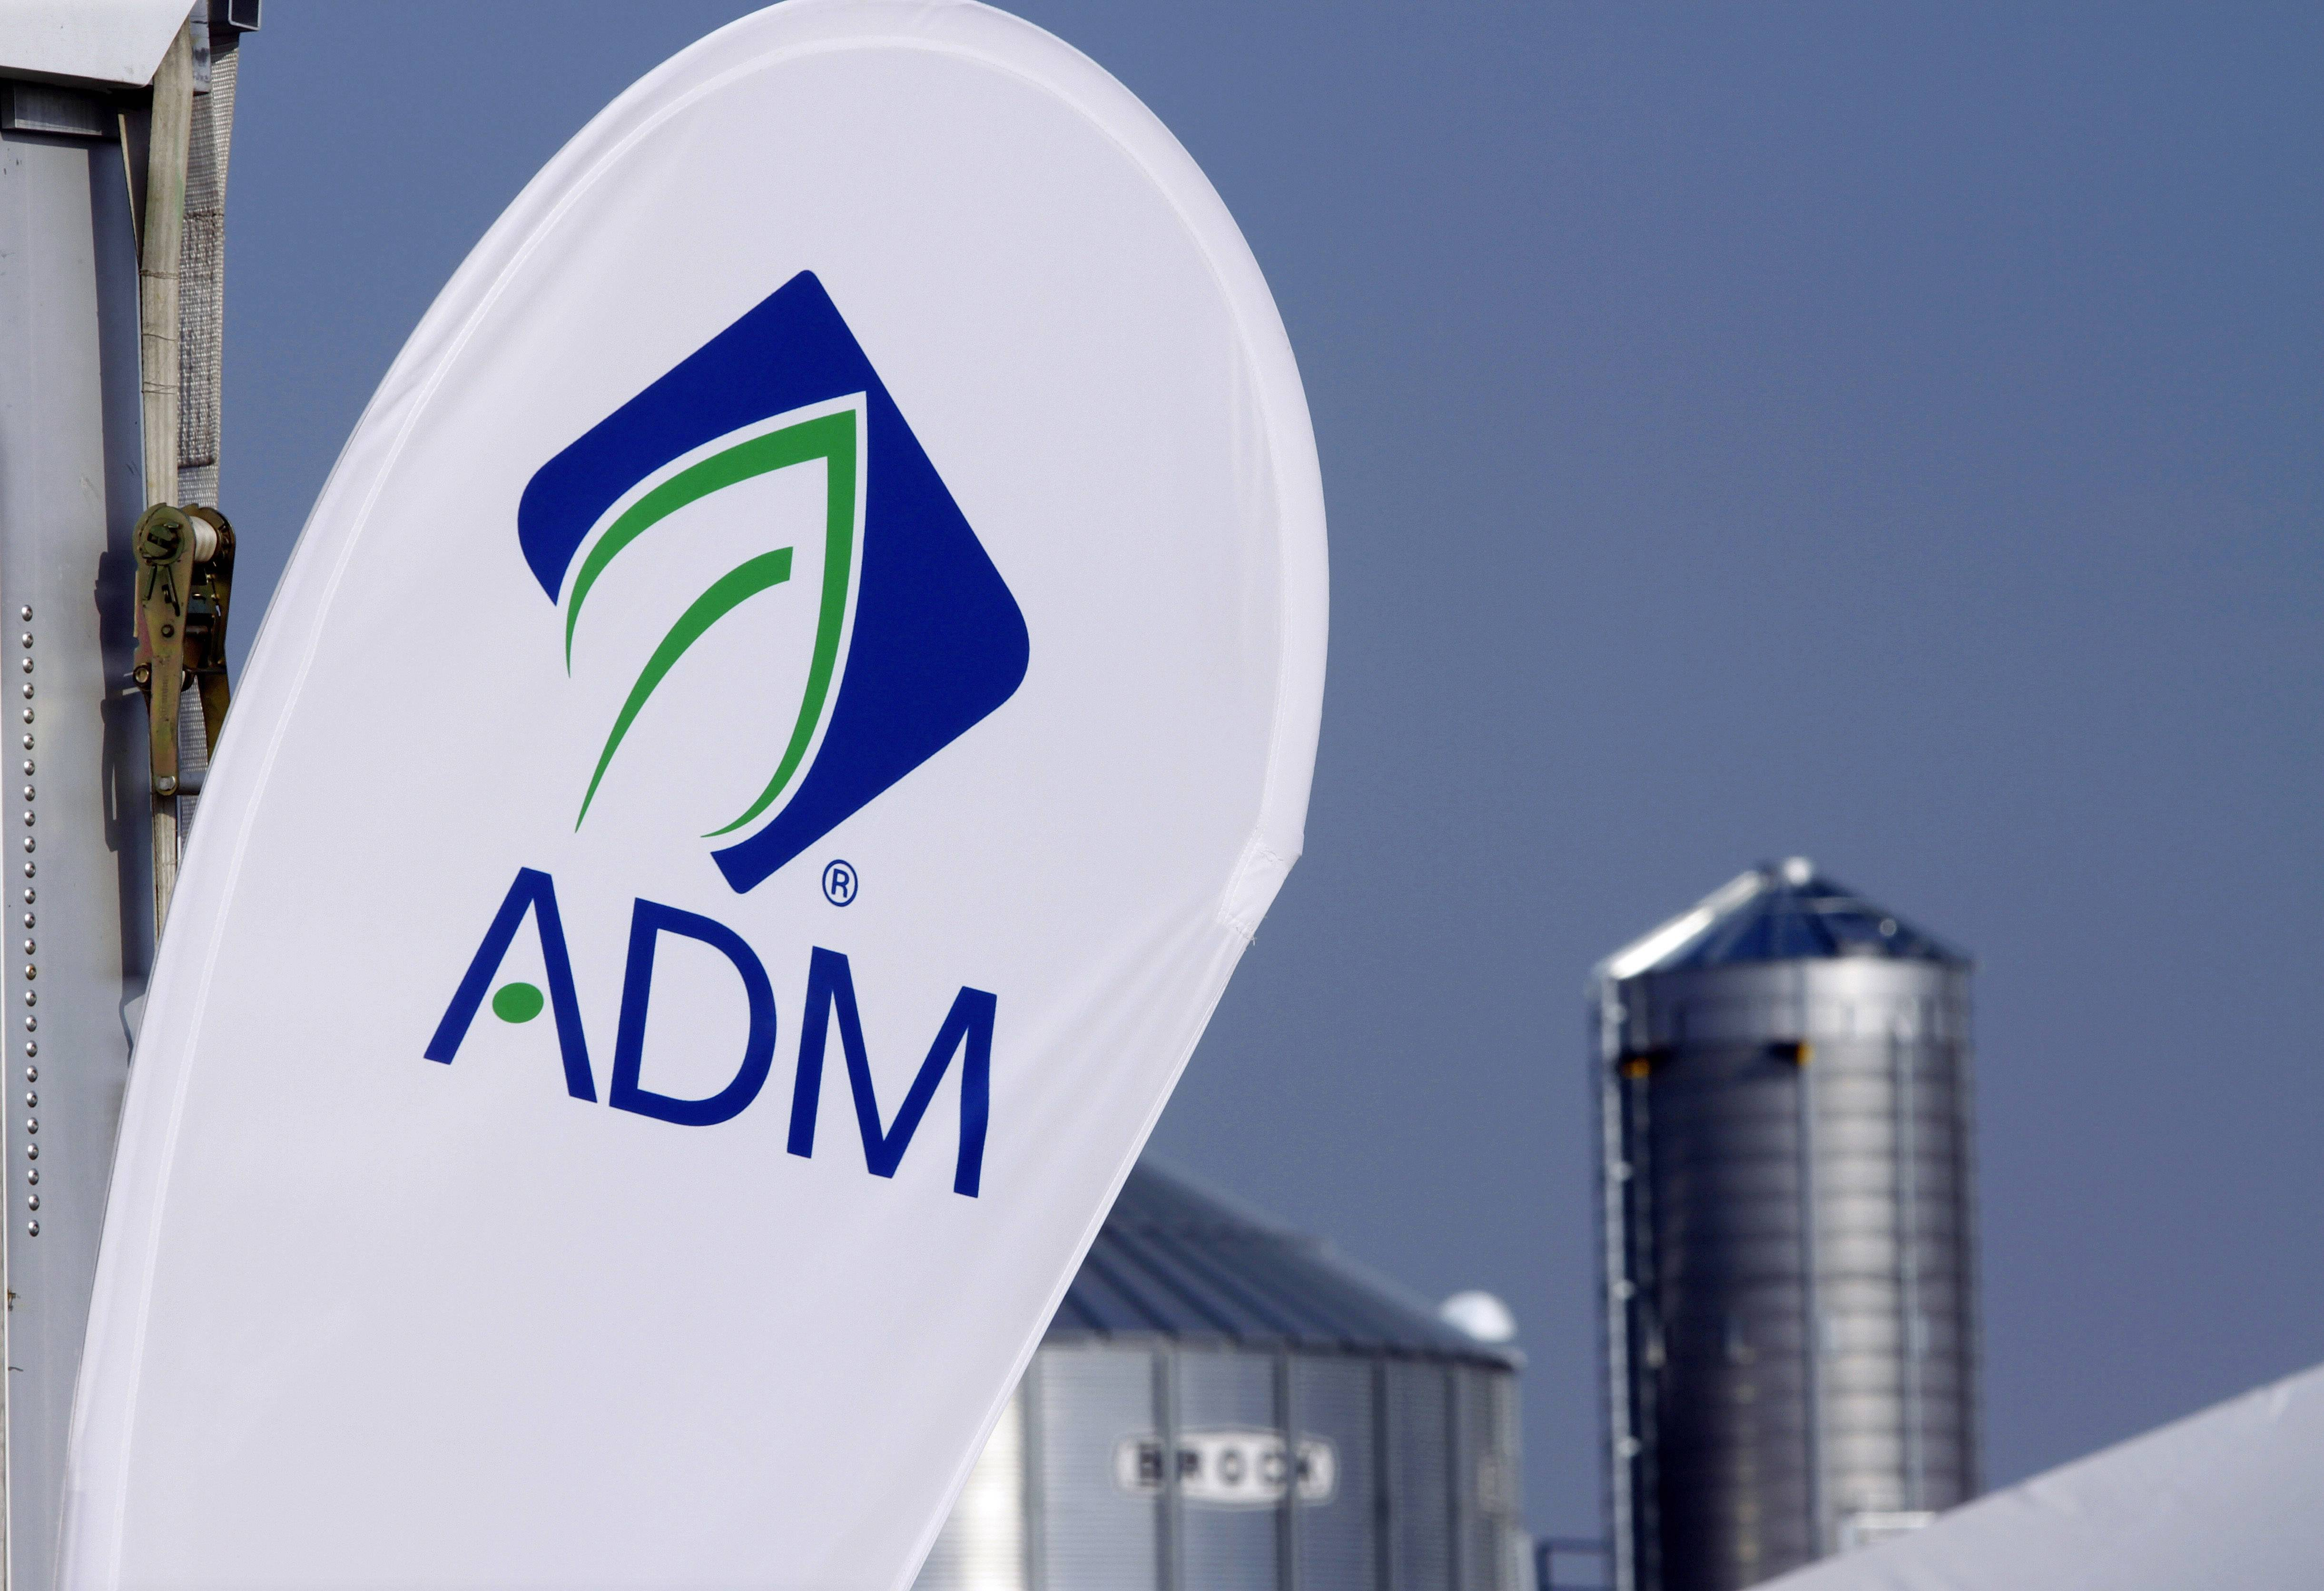 Associated Press Agribusiness giant ADM, based in Decatur, will pay about $3 billion to buy the privately held Swiss company Wild Flavors, which supplies natural ingredients to the food and beverage industry.